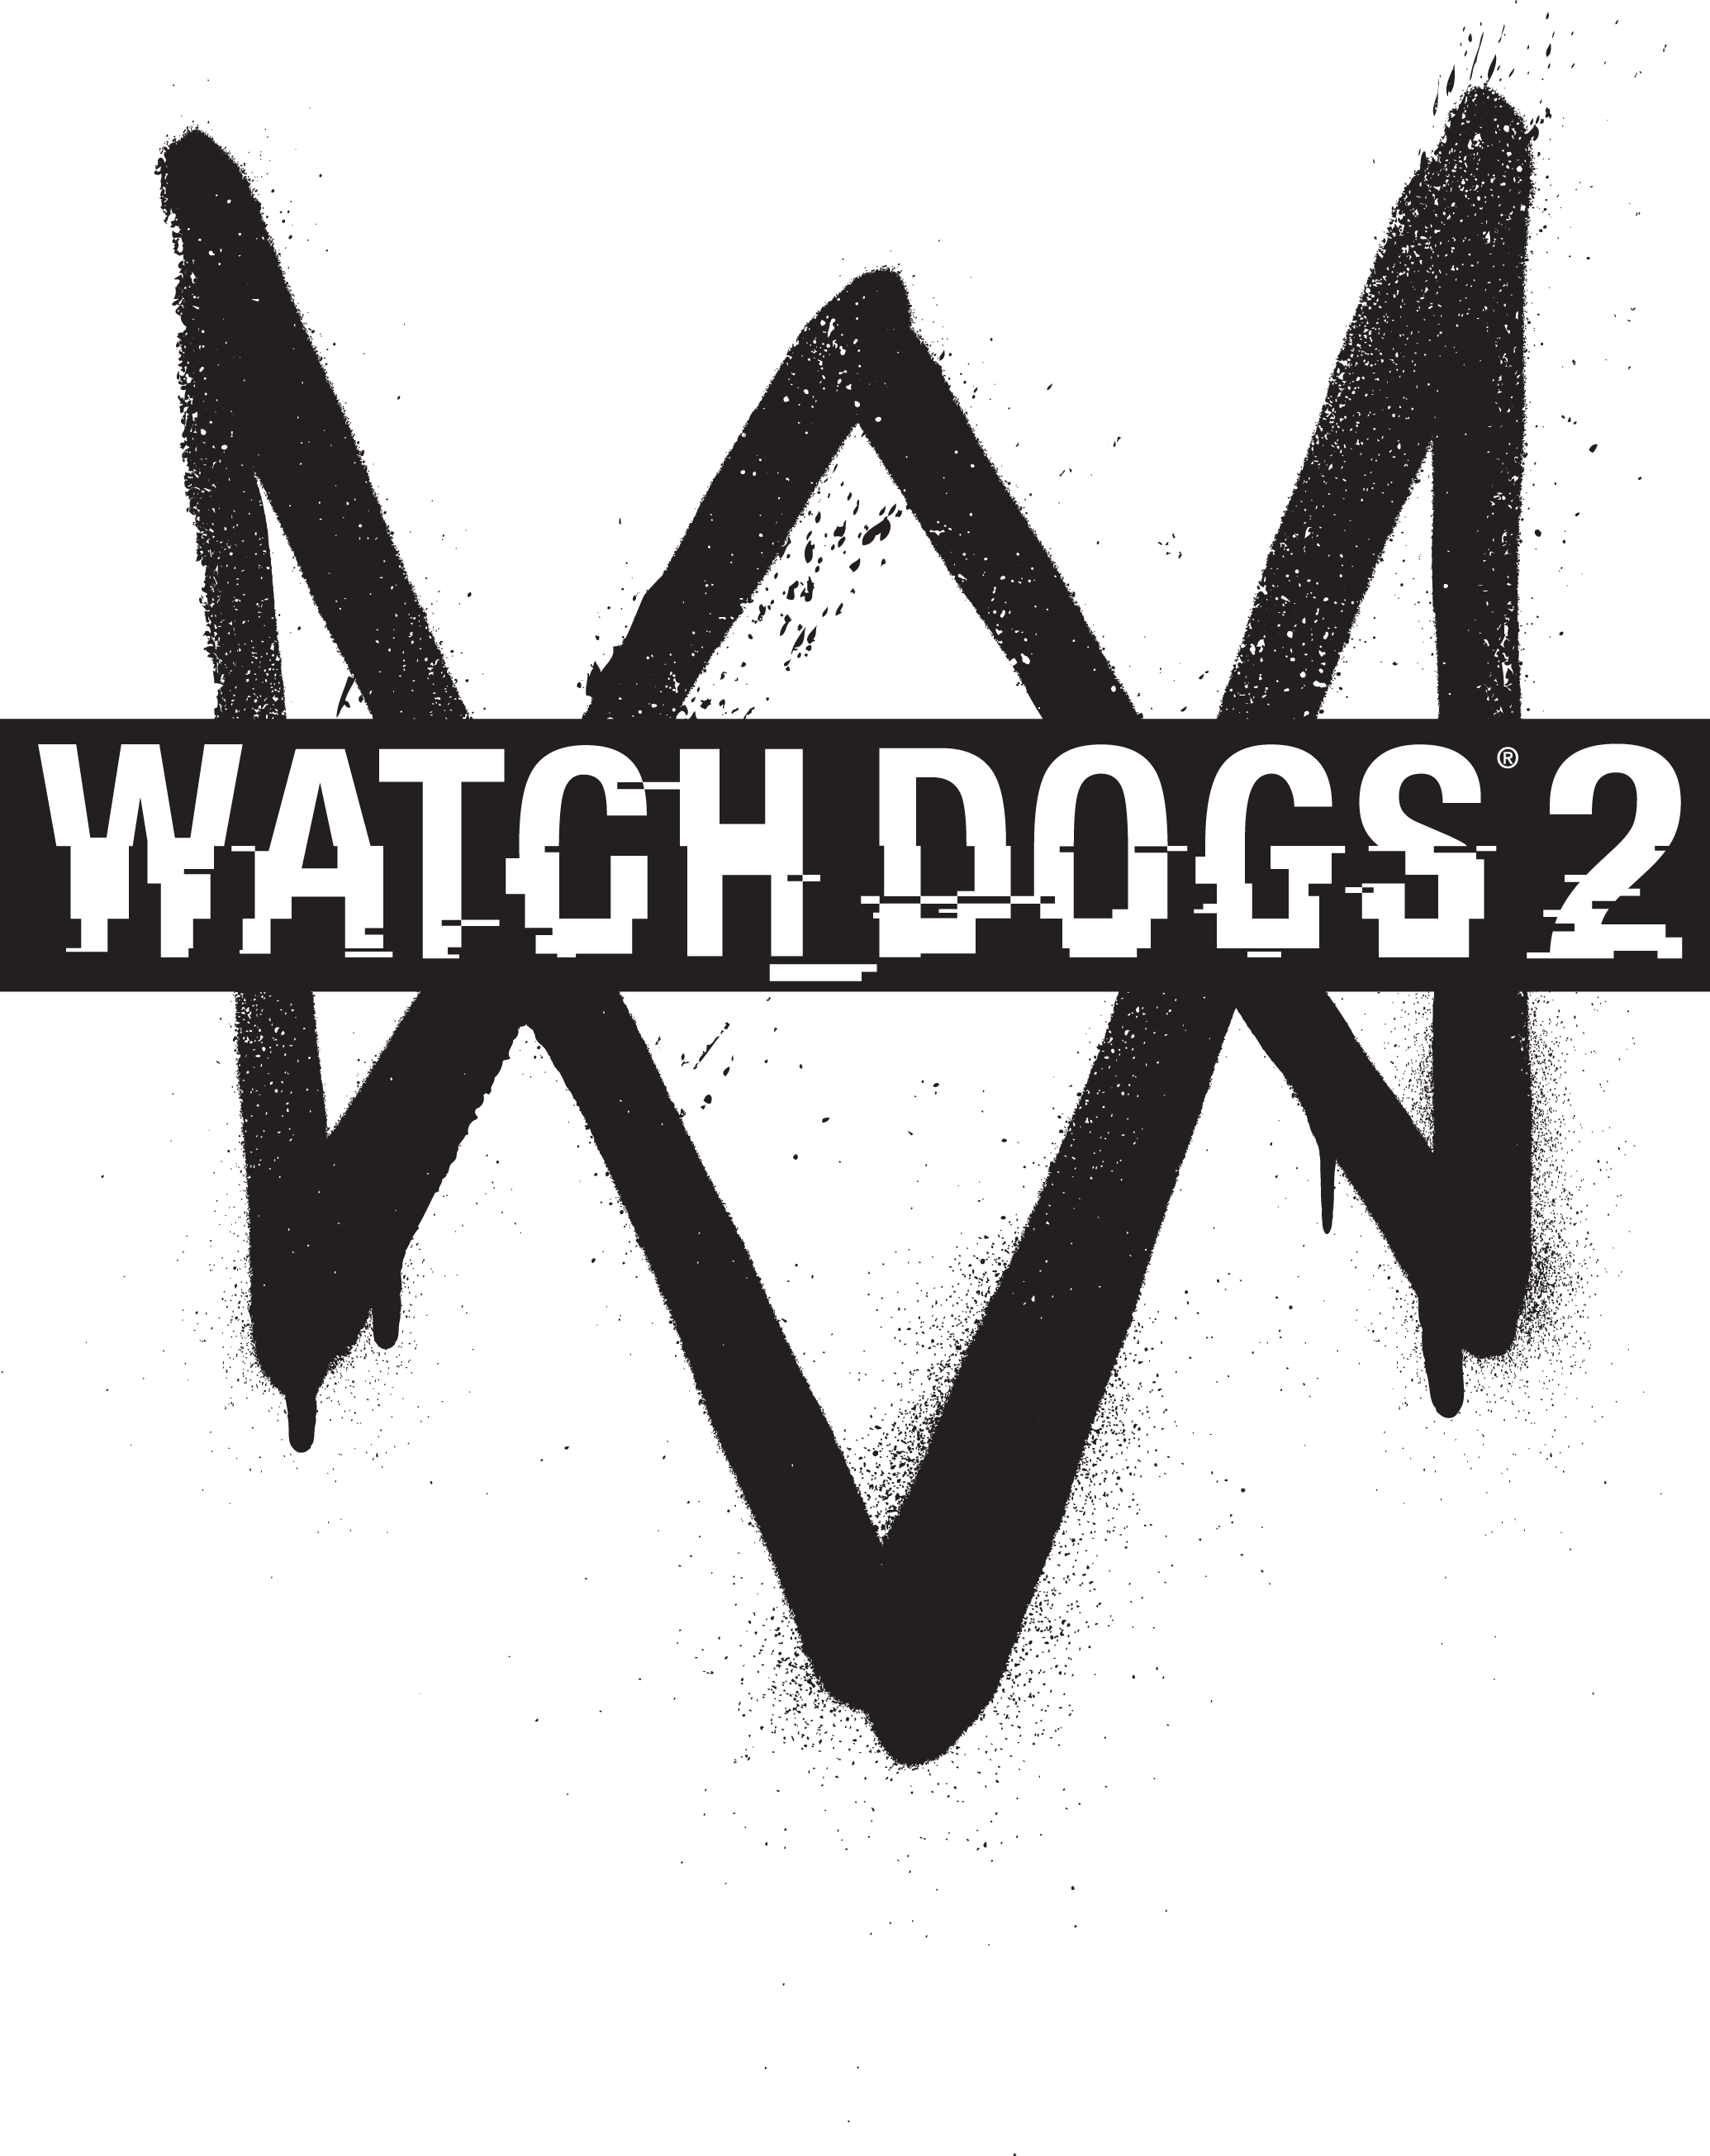 Watch dogs logo png. Seamless multiplayer statement invision